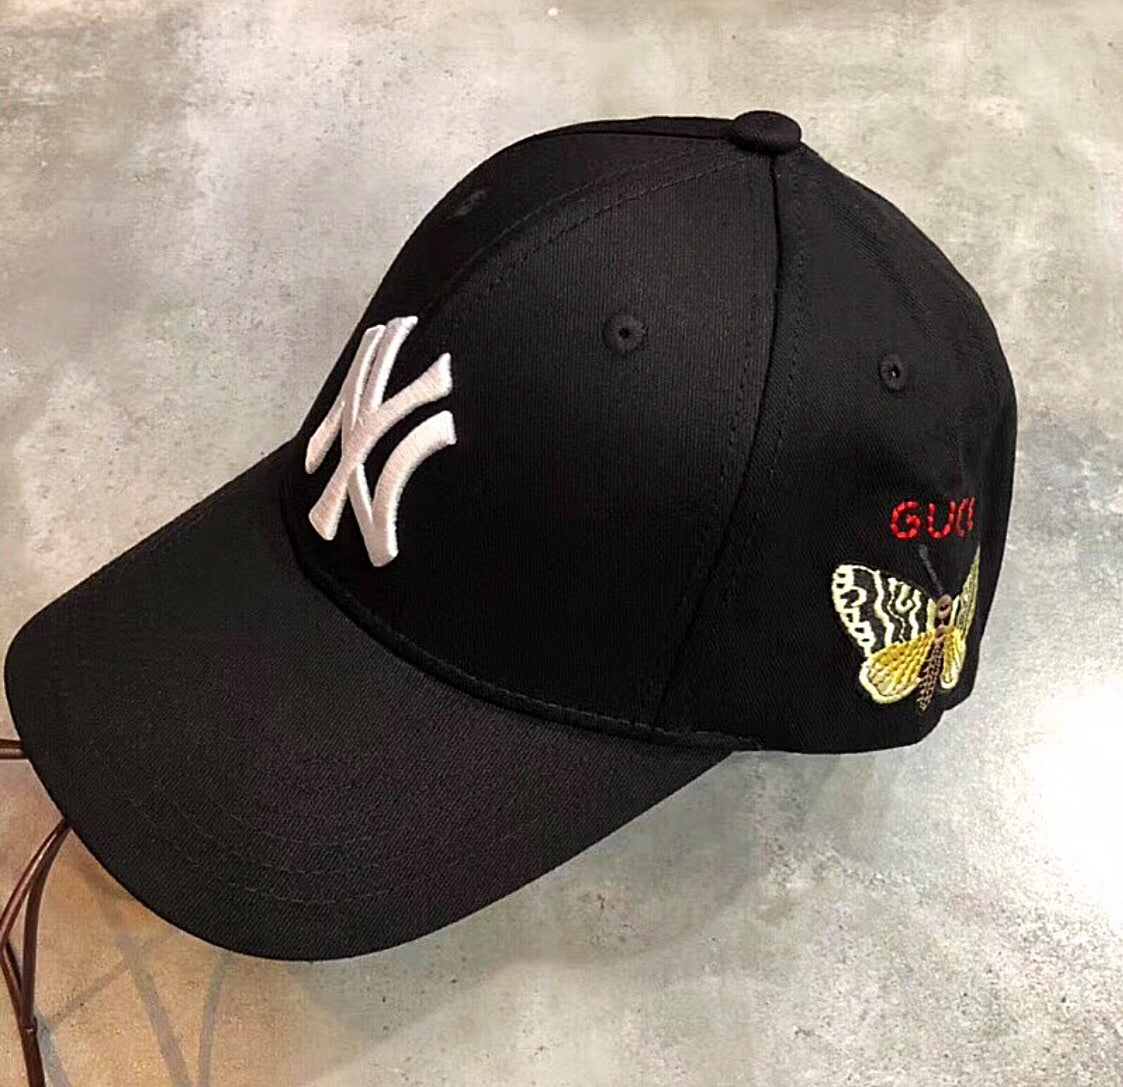 a80a6e5f0b69 Gucci Inspired Baseball Cap Hat with Yankees Patch